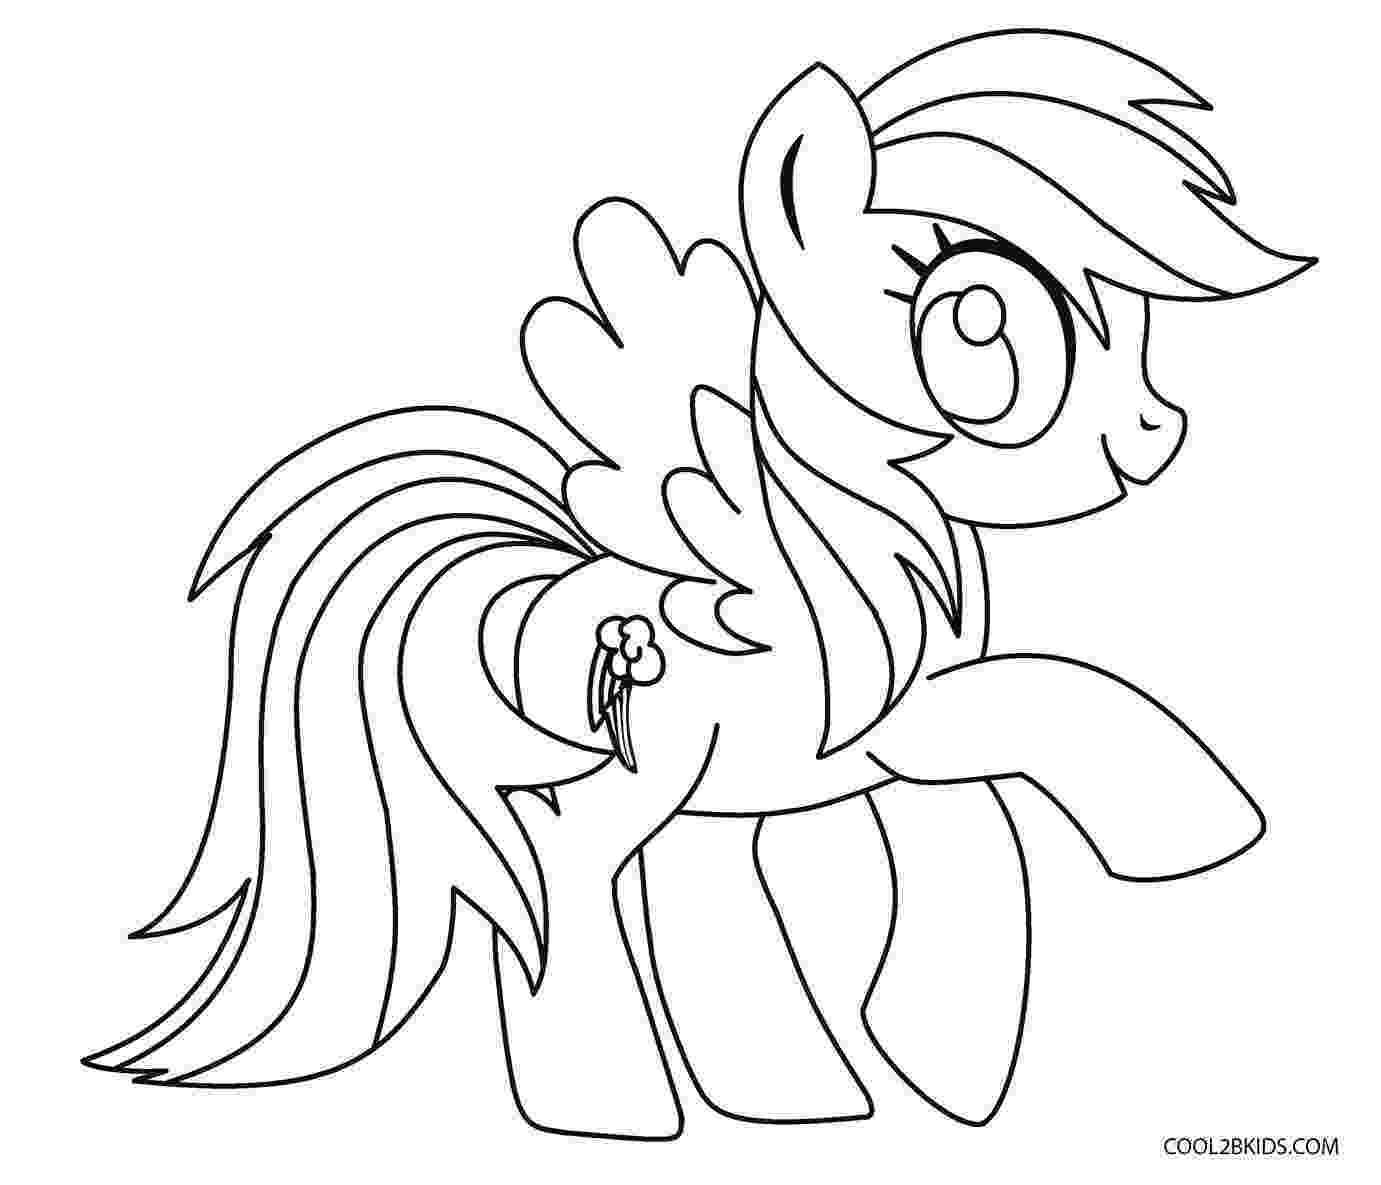 coloring pages of ponies free printable my little pony coloring pages for kids ponies pages coloring of